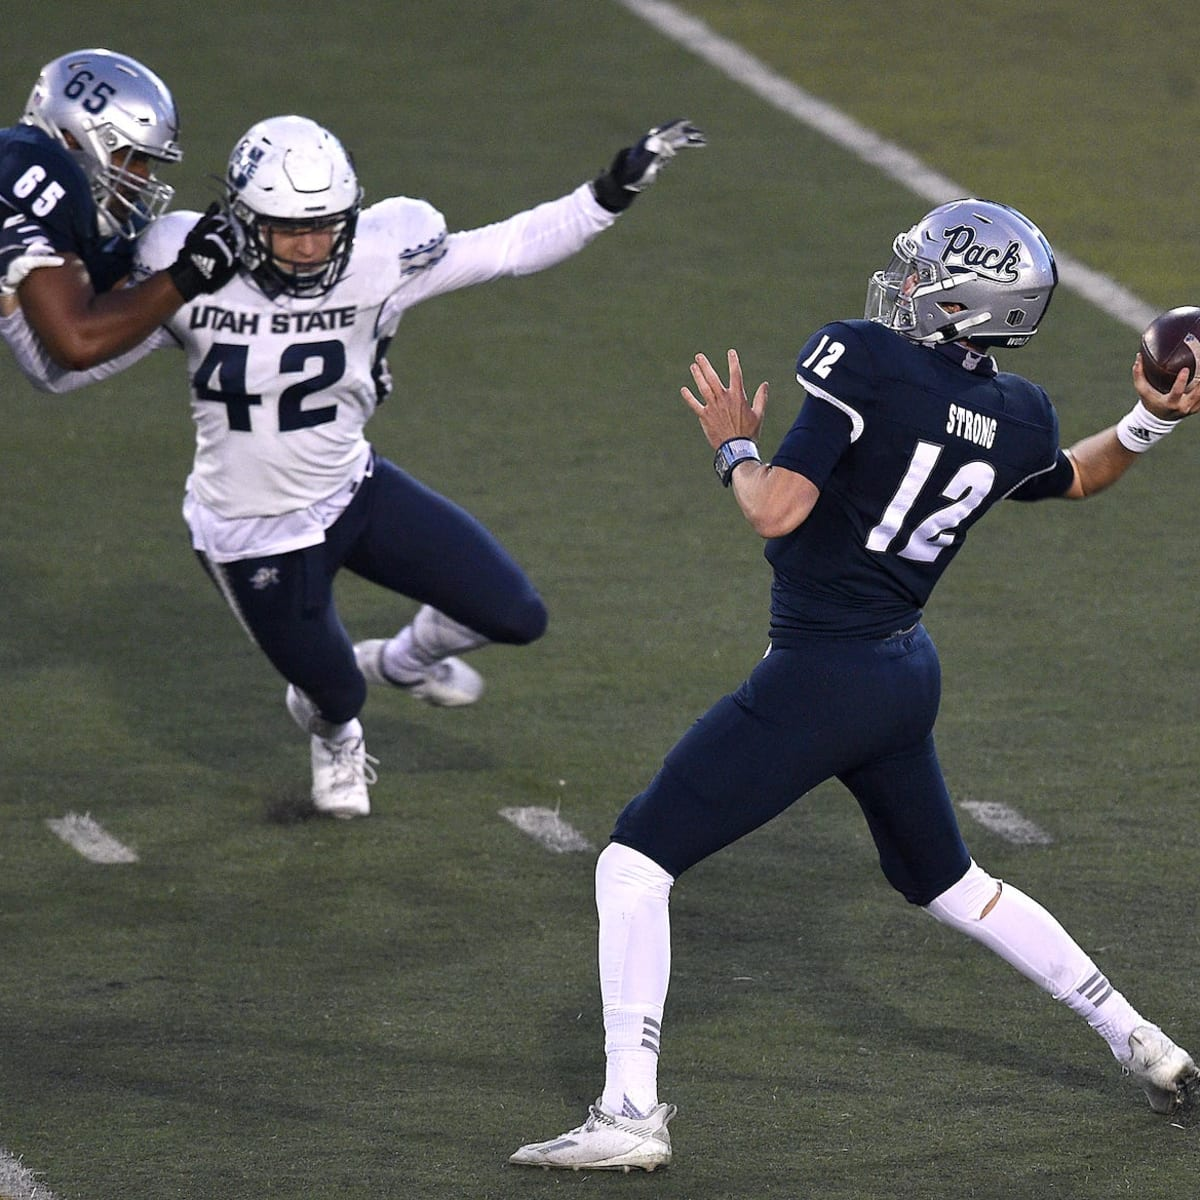 NFL Draft Profile: Carson Strong, Quarterback, Nevada Wolf Pack - The NFL  Draft Bible on Sports Illustrated: The Leading Authority on the NFL Draft